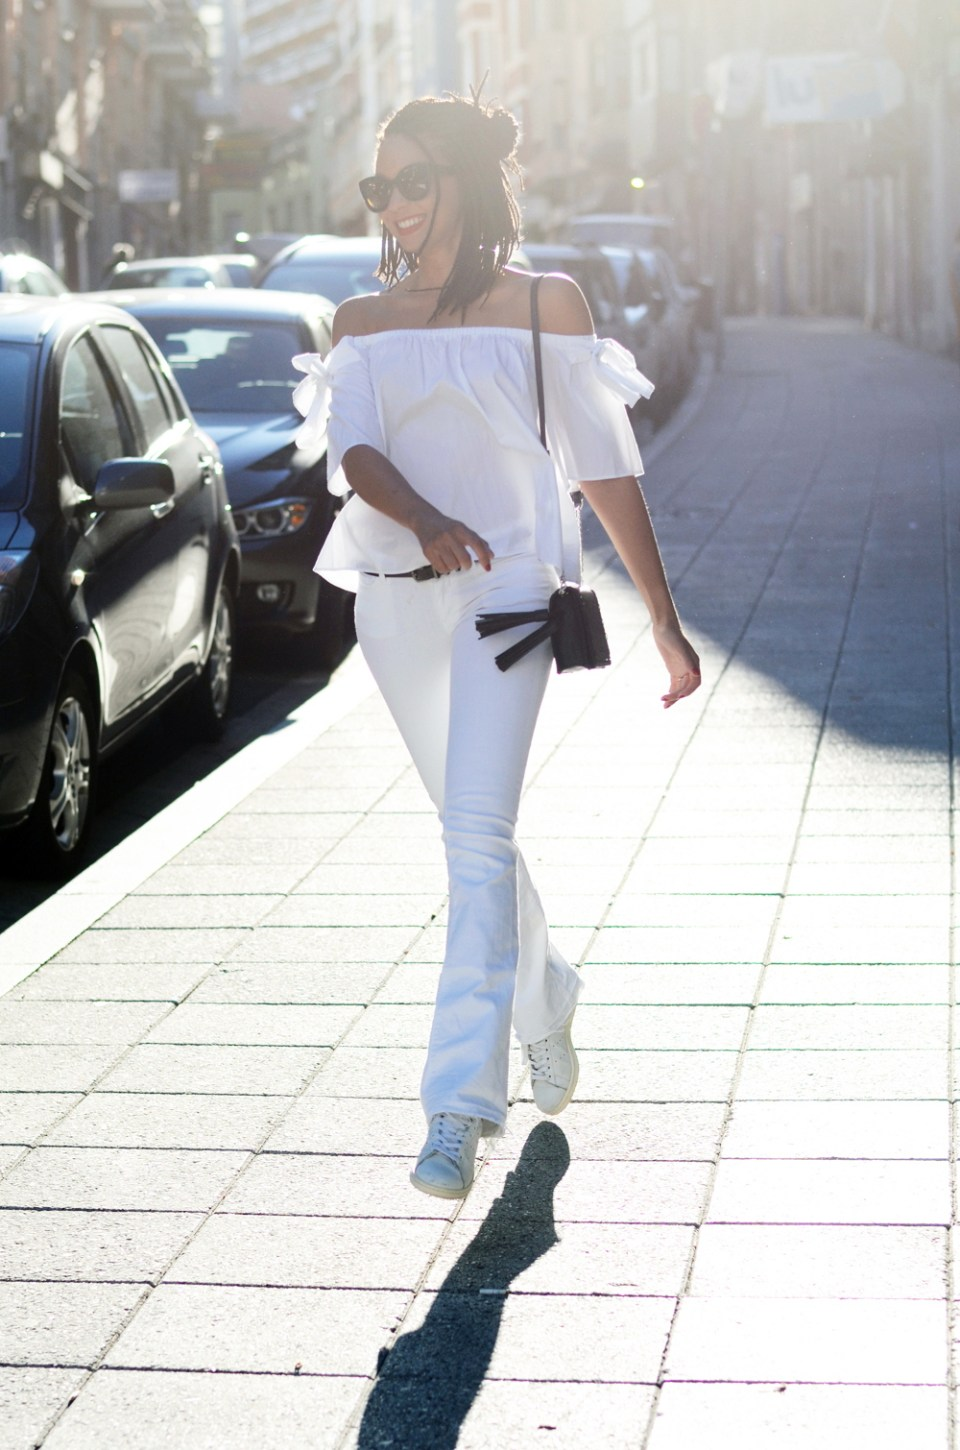 mercredie-blog-fashion-blogger-mode-geneve-suisse-santander-celine-marta-all-white-outfit-flare-elisabetta-franchetti-ceinture-kooples3